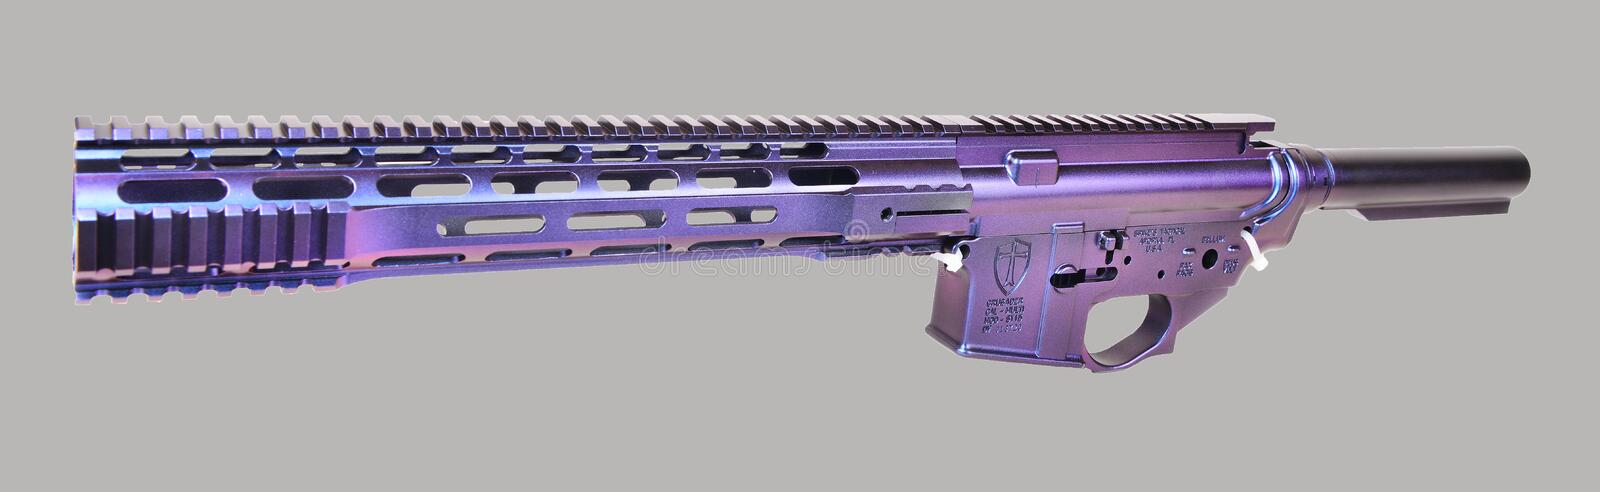 Left Side Painted AR15 Upper, Lower, Hand Guard and Buffer Tube ready for remaining parts to complete royalty free stock images